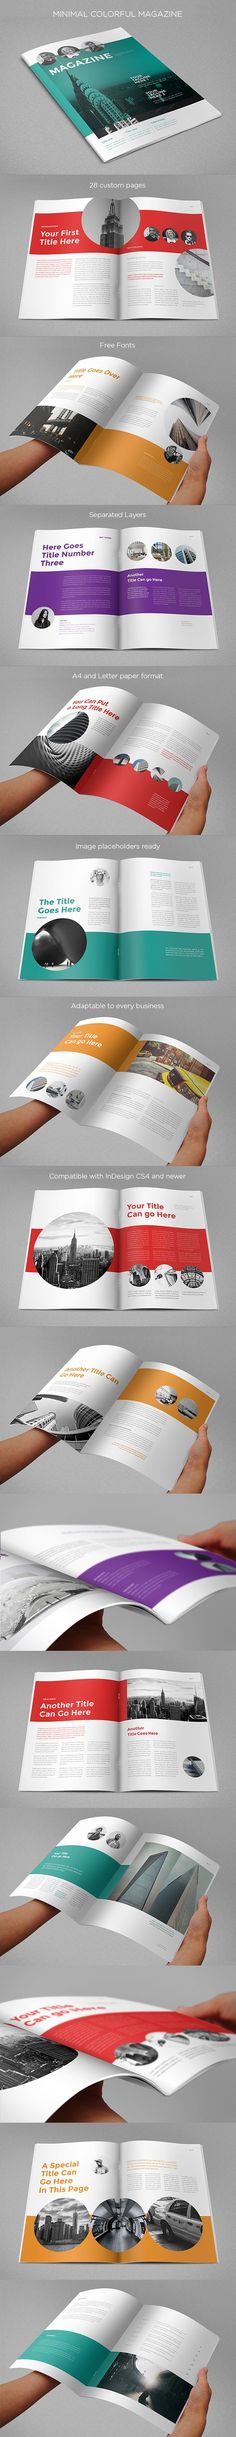 Buy Minimal Colorful Magazine By AbraDesign On GraphicRiver MINIMAL COLORFUL MAGAZINE Clean Modern And Simple Design Ideal For Any Purposes